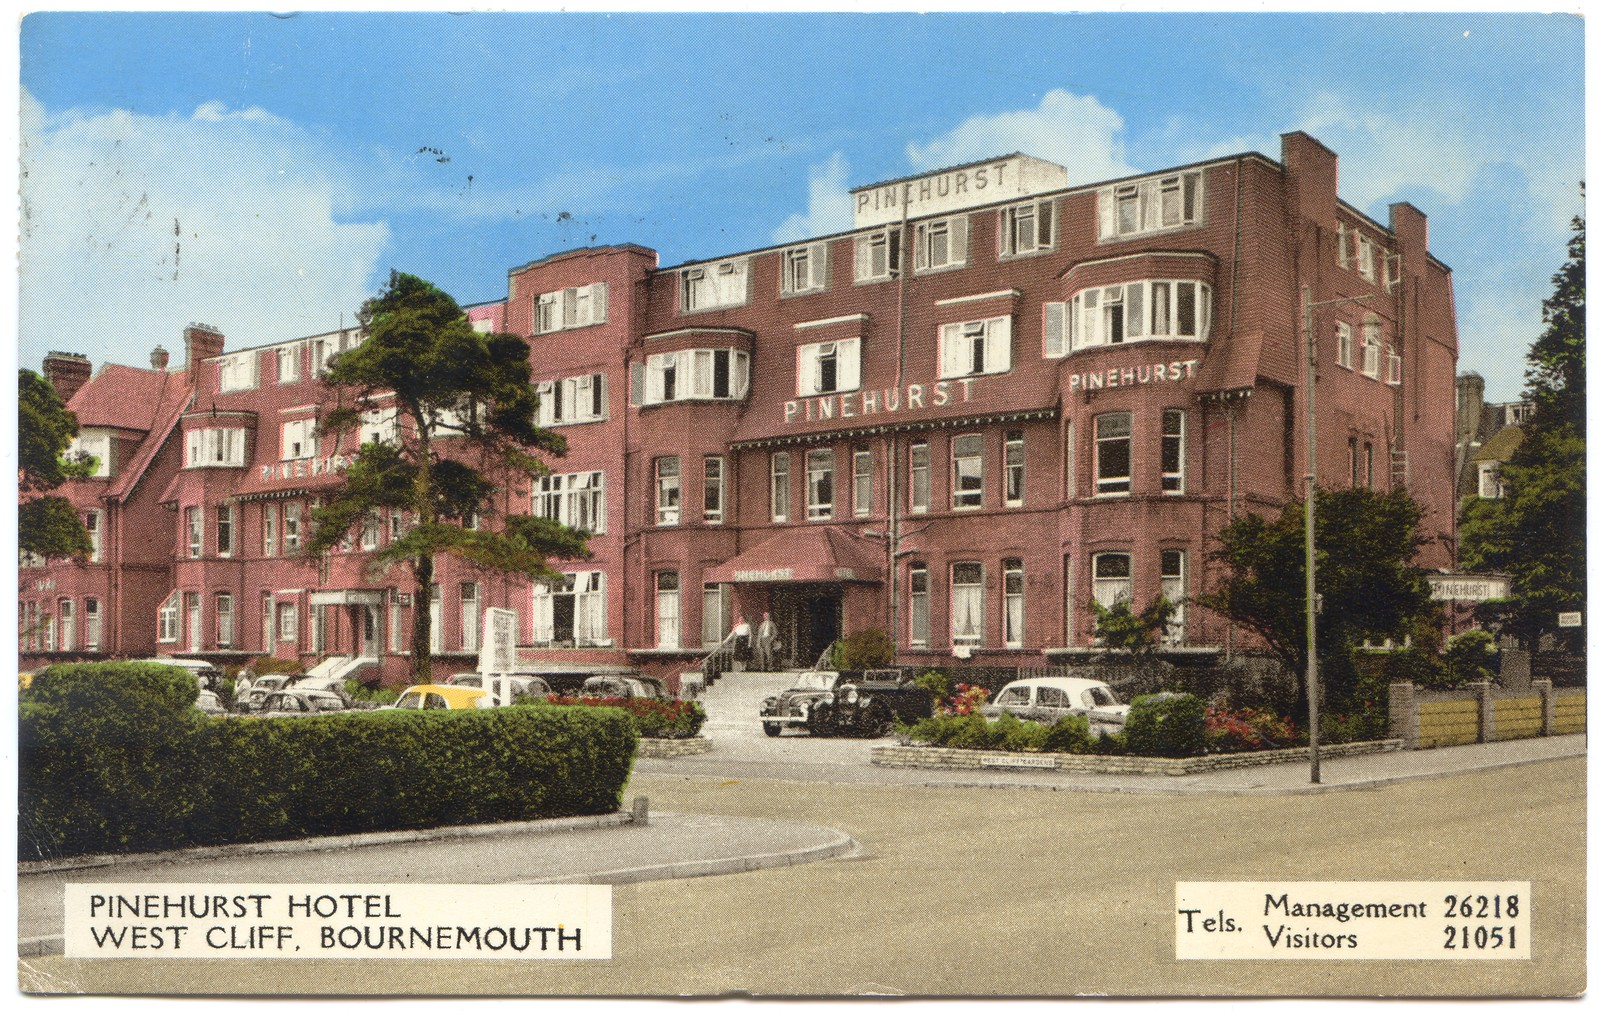 bournemouth sands hotel the grange hotel pinehurst hotel